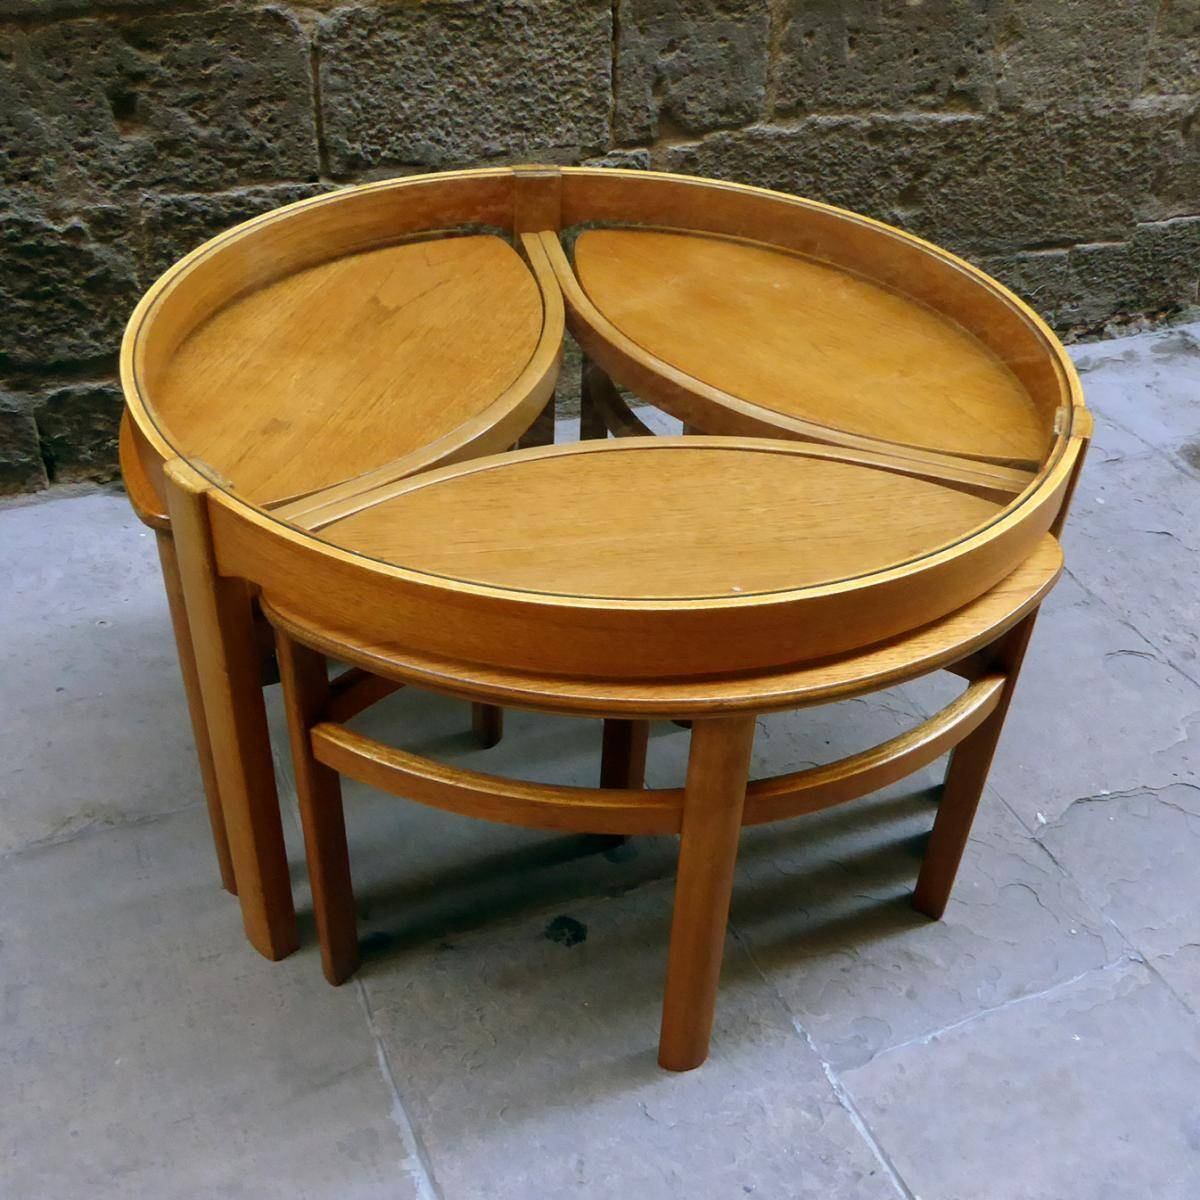 Round Glass Coffee Table With Matching Nesting Tables, Set Of 4 pertaining to Nest Coffee Tables (Image 22 of 30)